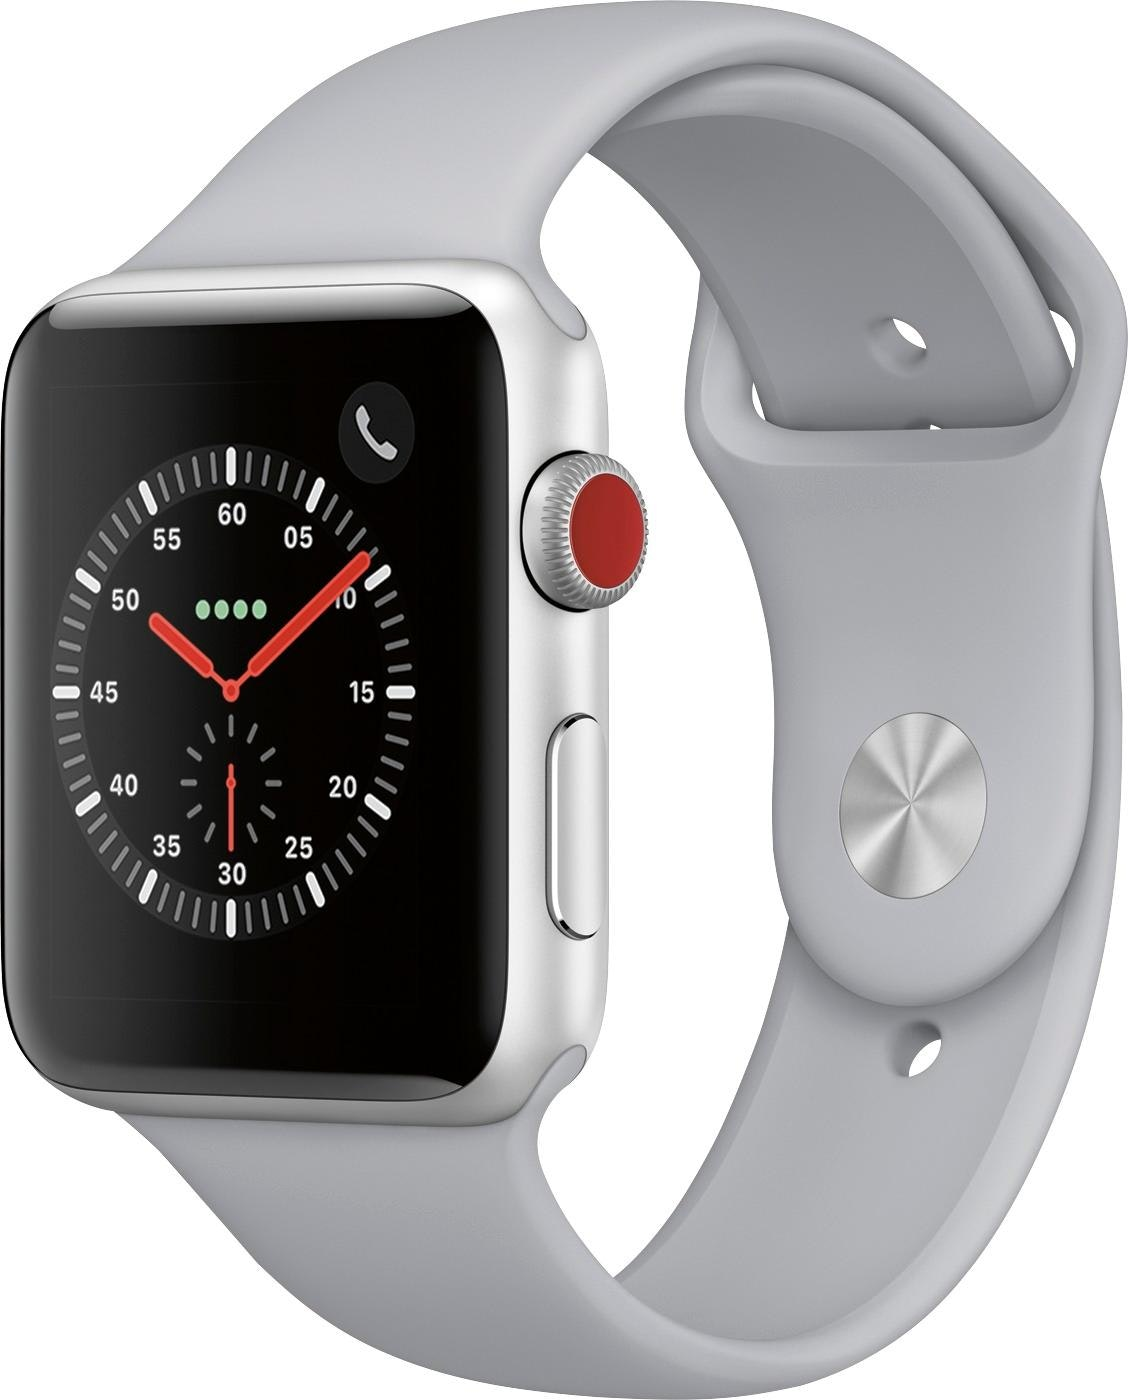 Apple Watch Series 3 GPS + Cellular 42mm Silver Aluminum Case with Fog Sport Band A1861